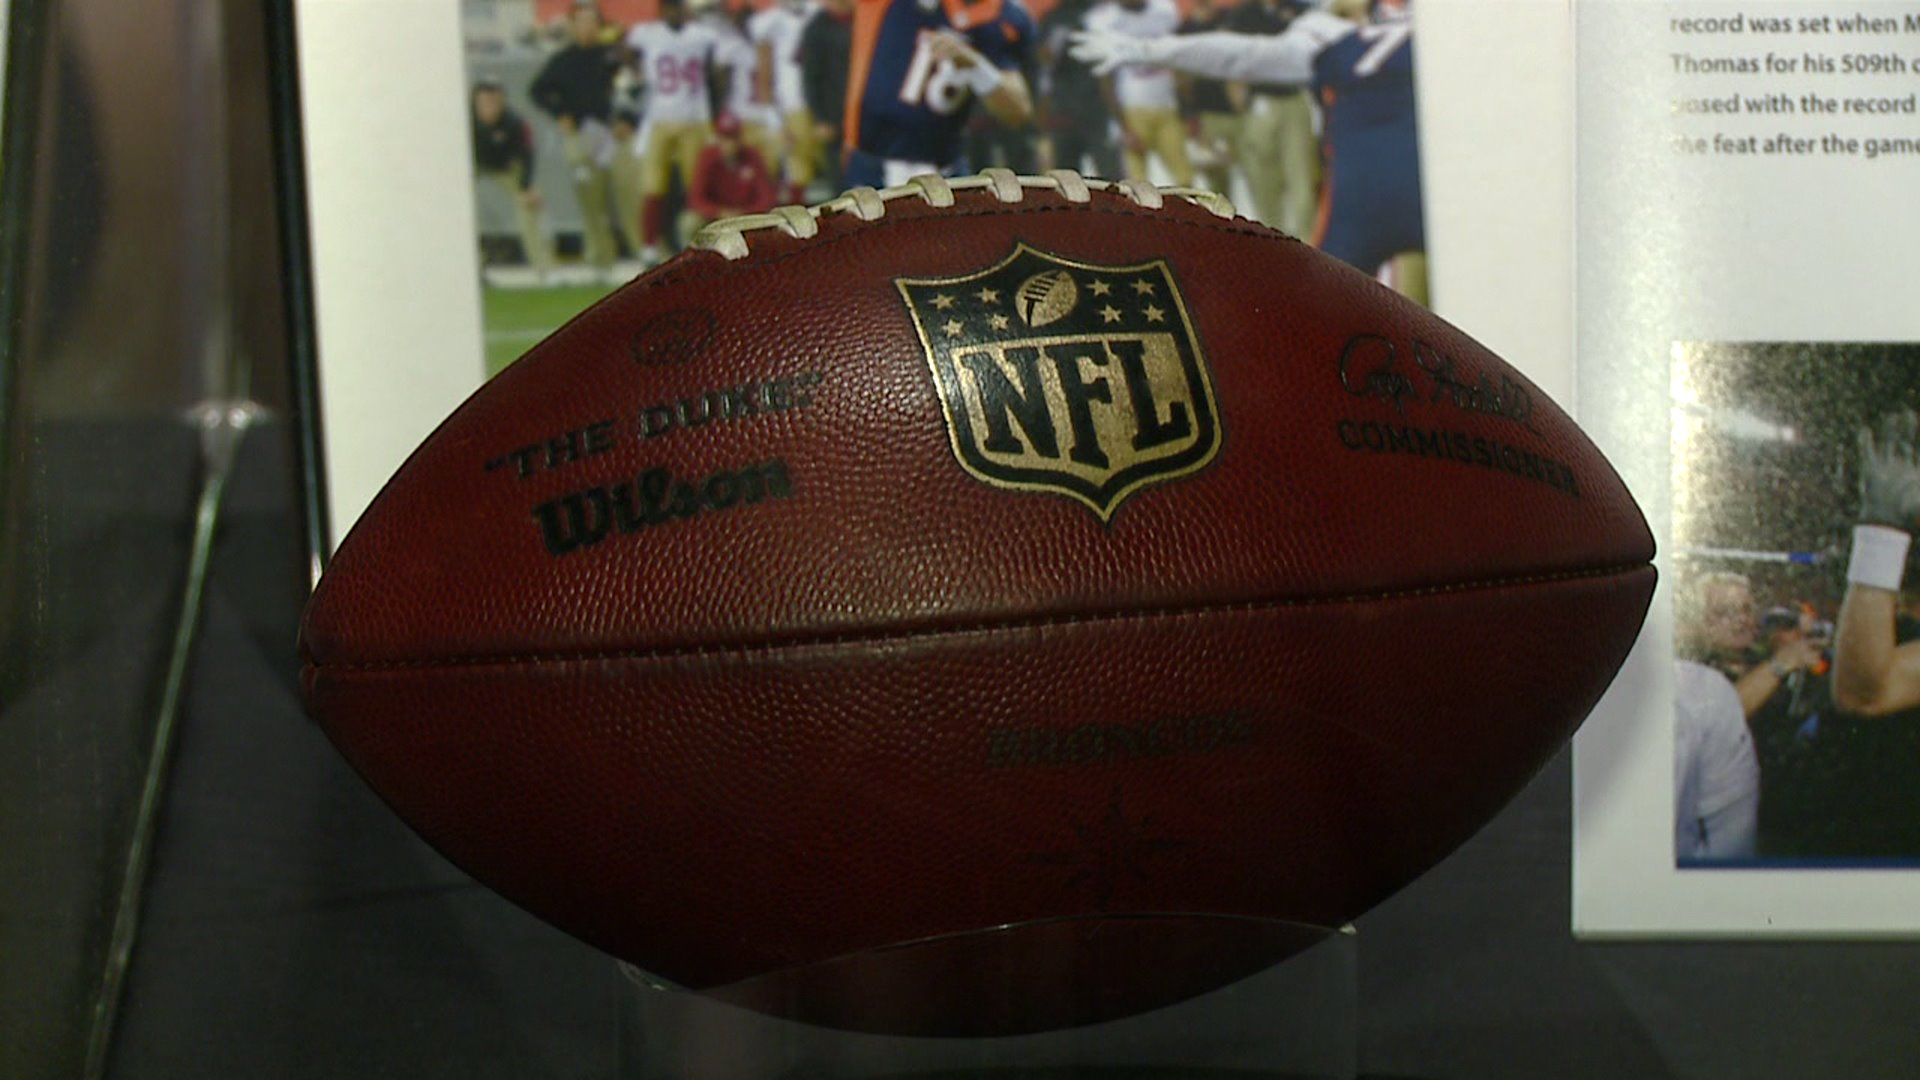 Peyton Manning's record-breaking football on display at the Hall of Fame in Canton, Ohio